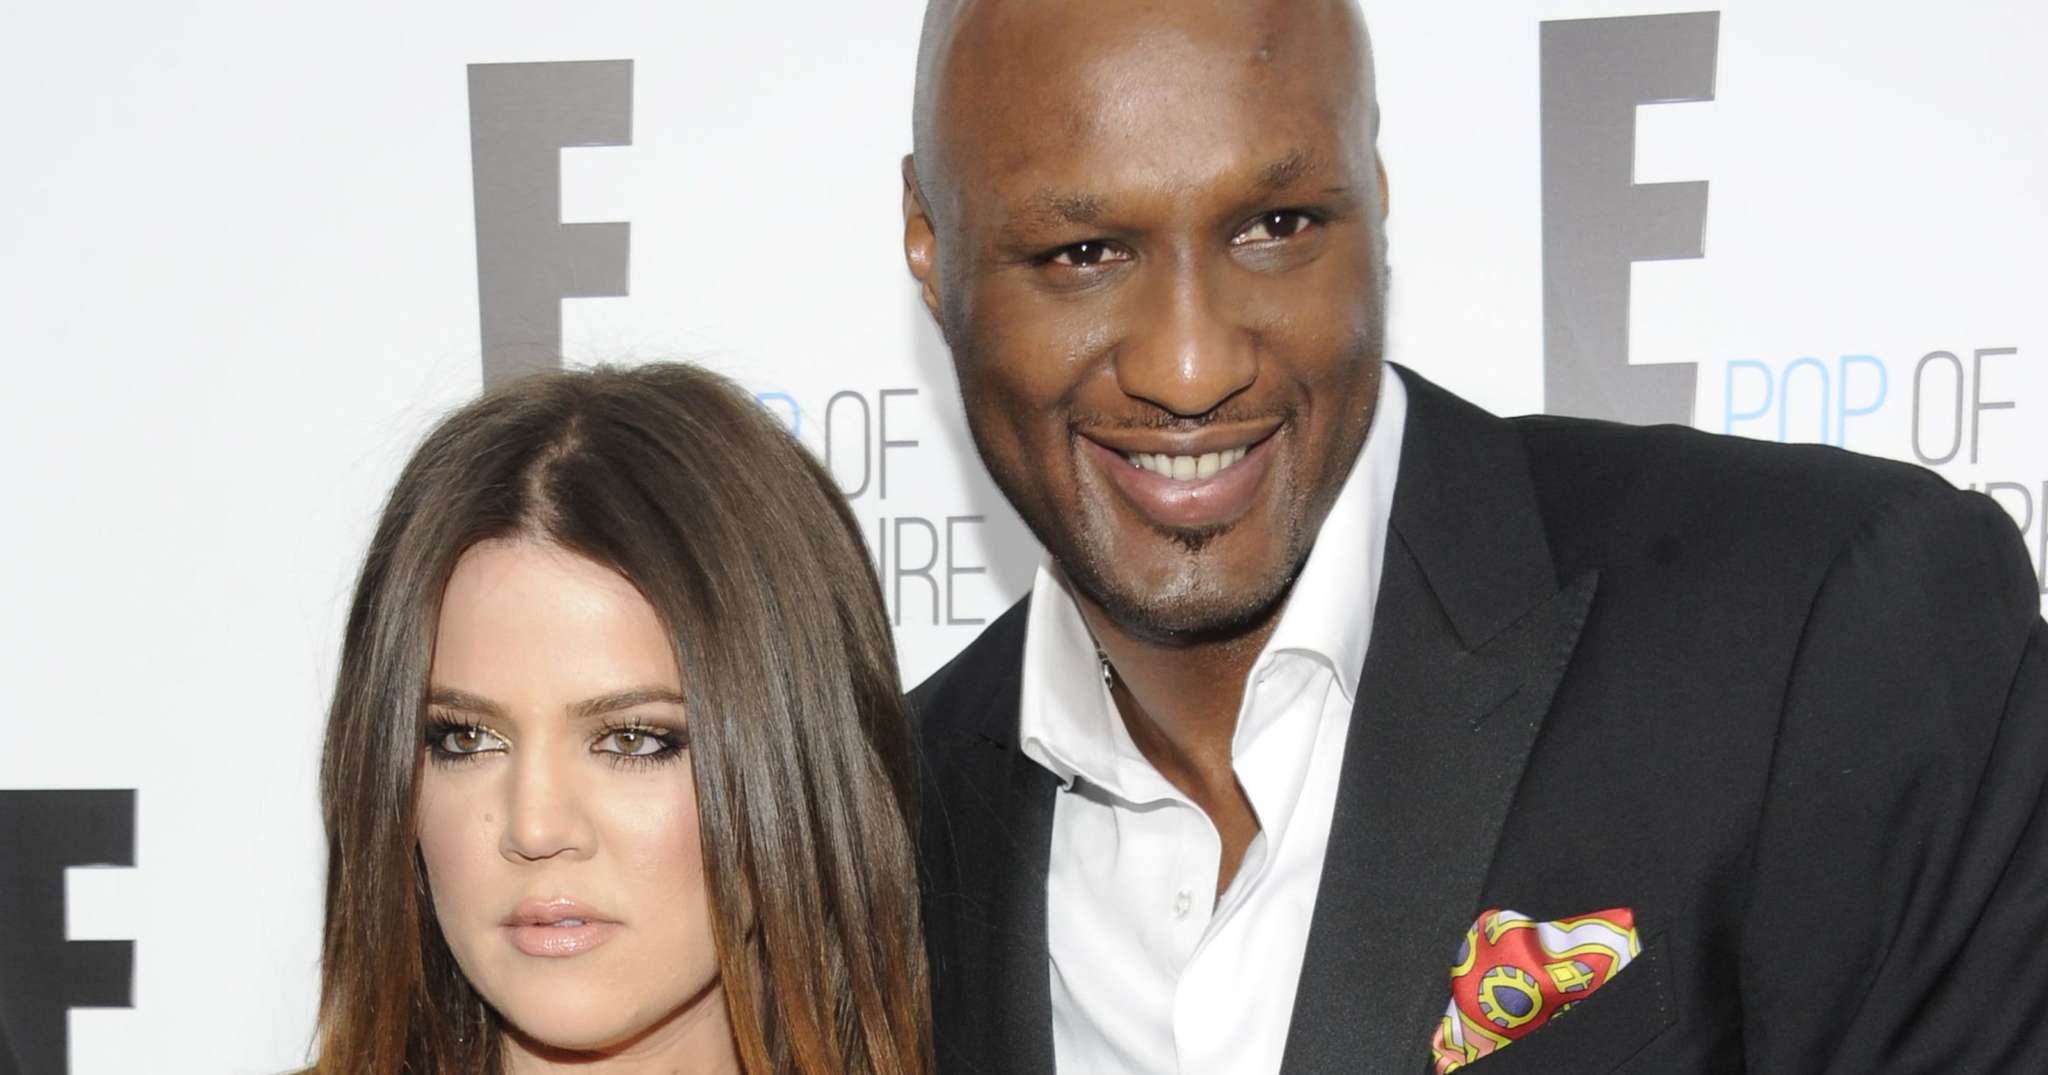 kuwk-lamar-odom-really-wants-to-reconnect-with-khloe-kardashian-but-this-fear-is-stopping-him